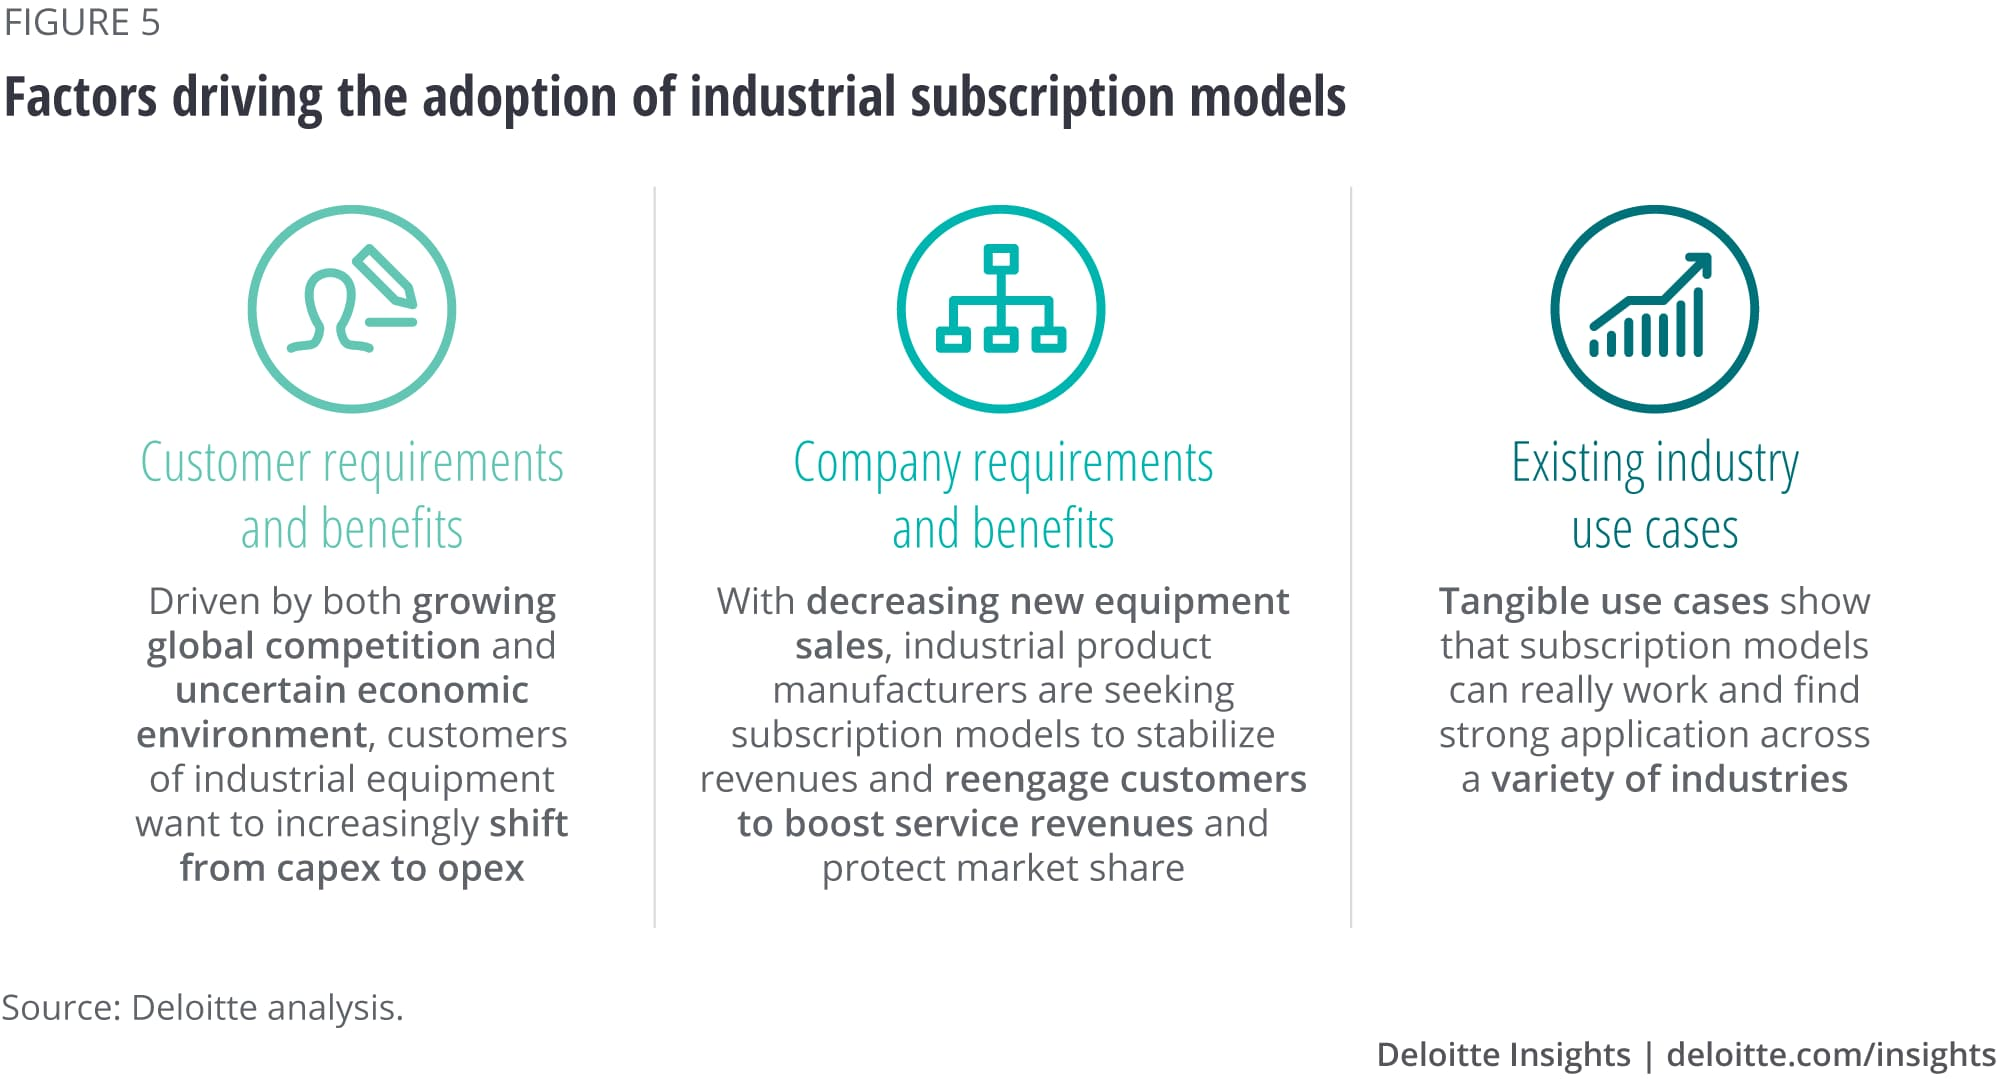 Factors driving the adoption of industrial subscription models